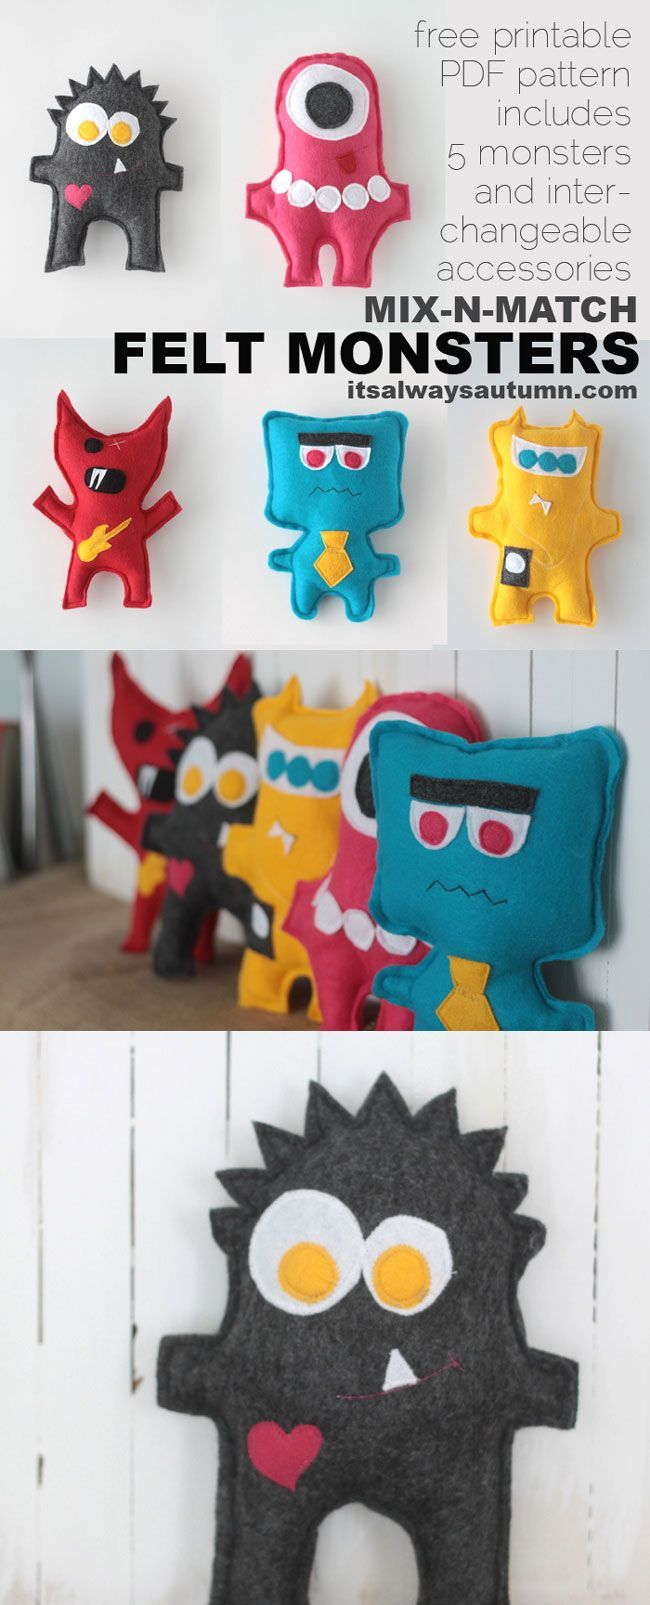 free sewing pattern for these adorable felt monsters! five different monsters and 15 accessories to mix and match - how fun to make with your kids! easy sew